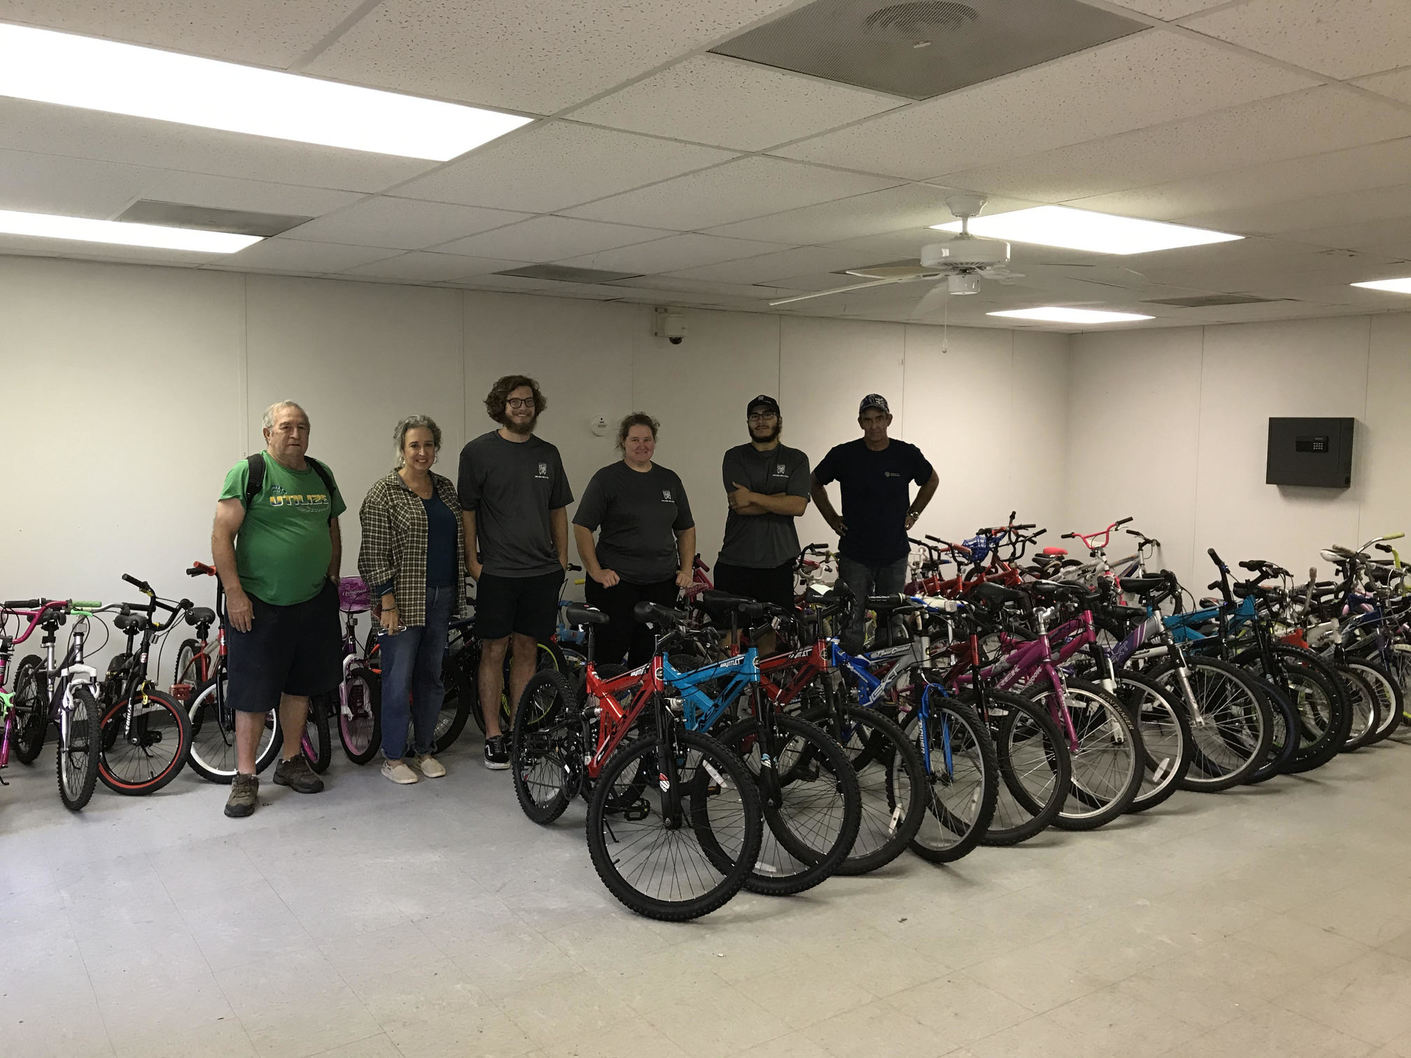 Our Pedal It Forward Team joined with Two Men and A Truck, Pathways to Progress and the Decatur City to bring free bikes to Decatur for the upcoming Glow Ride.